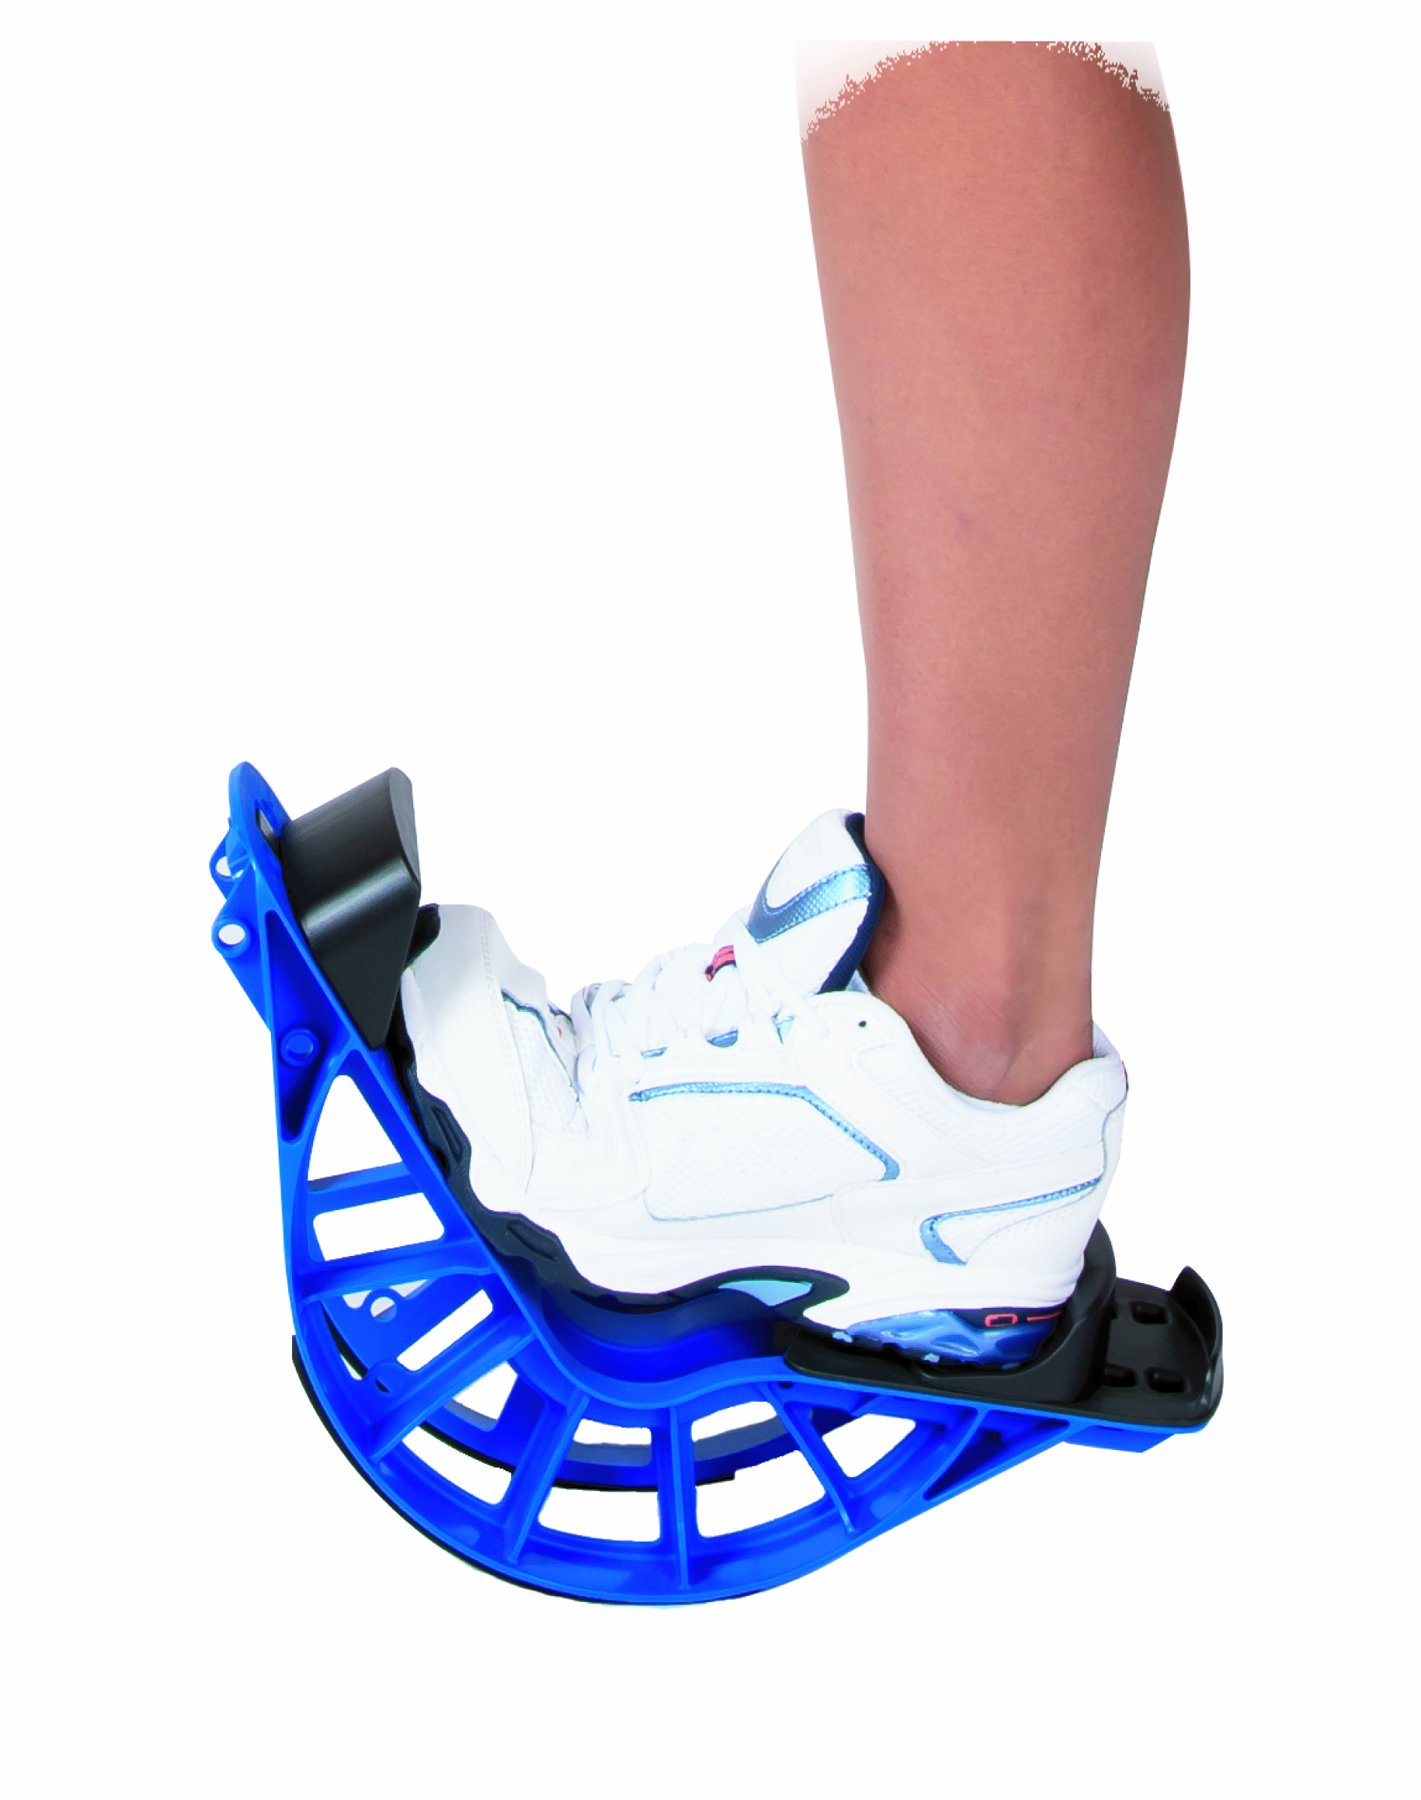 ProStretch Plus, Blue, Adjustable Calf Stretcher & Foot Rocker for Plantar Fasciitis, Achilles Tendonitis, Flexibility (Slip Resistant Bottom) by ProStretch (Image #3)